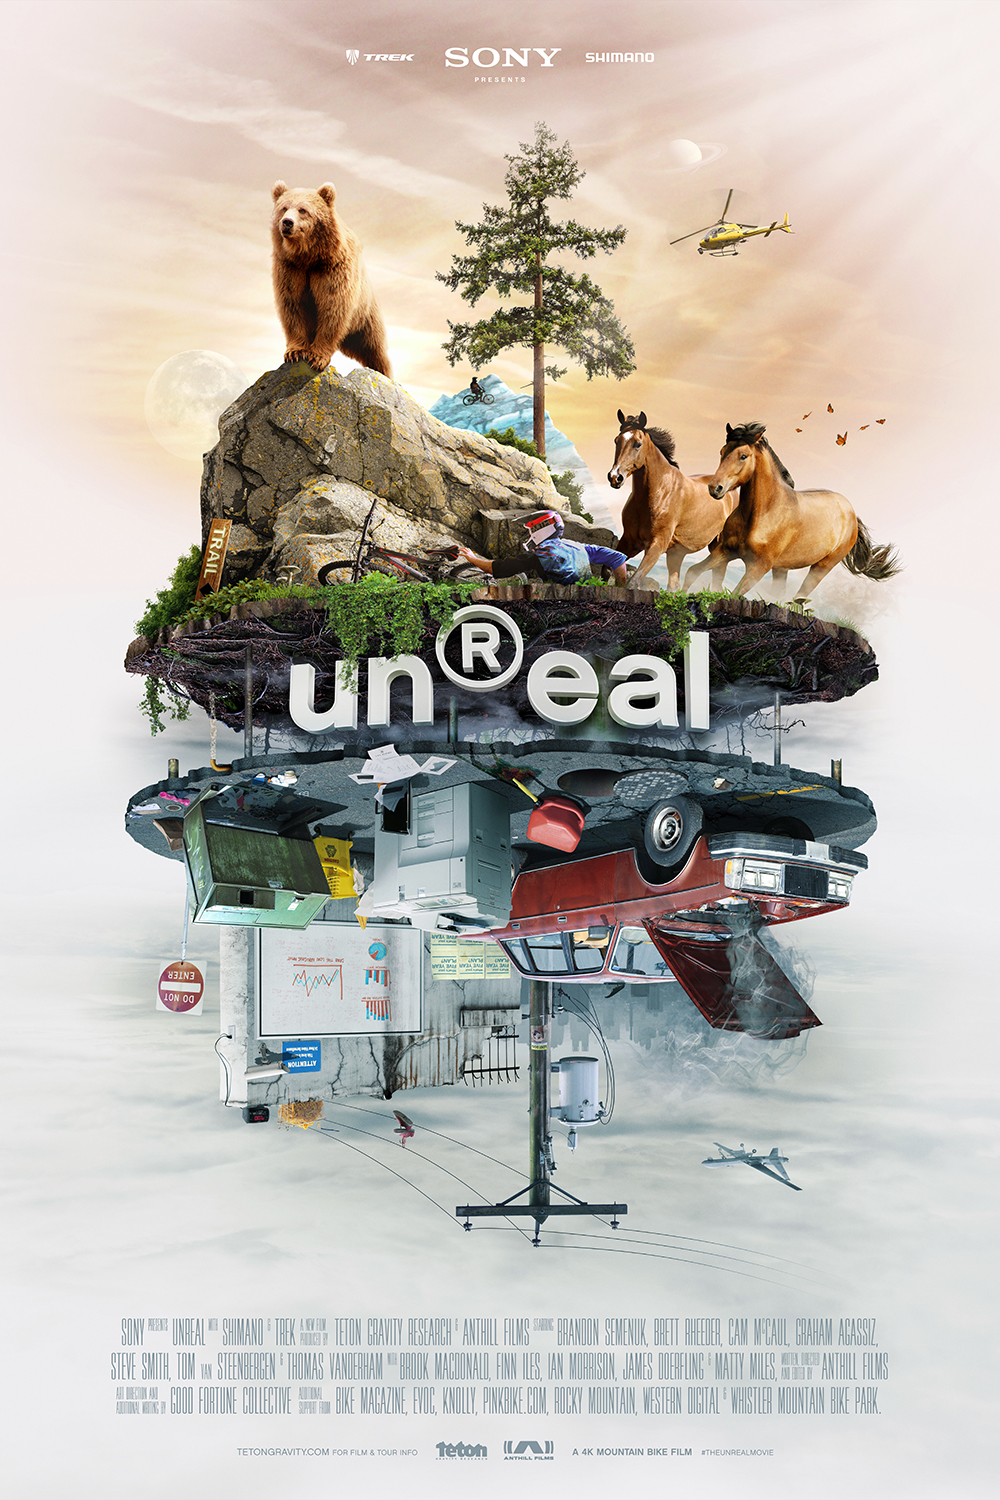 Unreal_Poster_Dueling_World_FINAL_RGB_1000x1500pixels